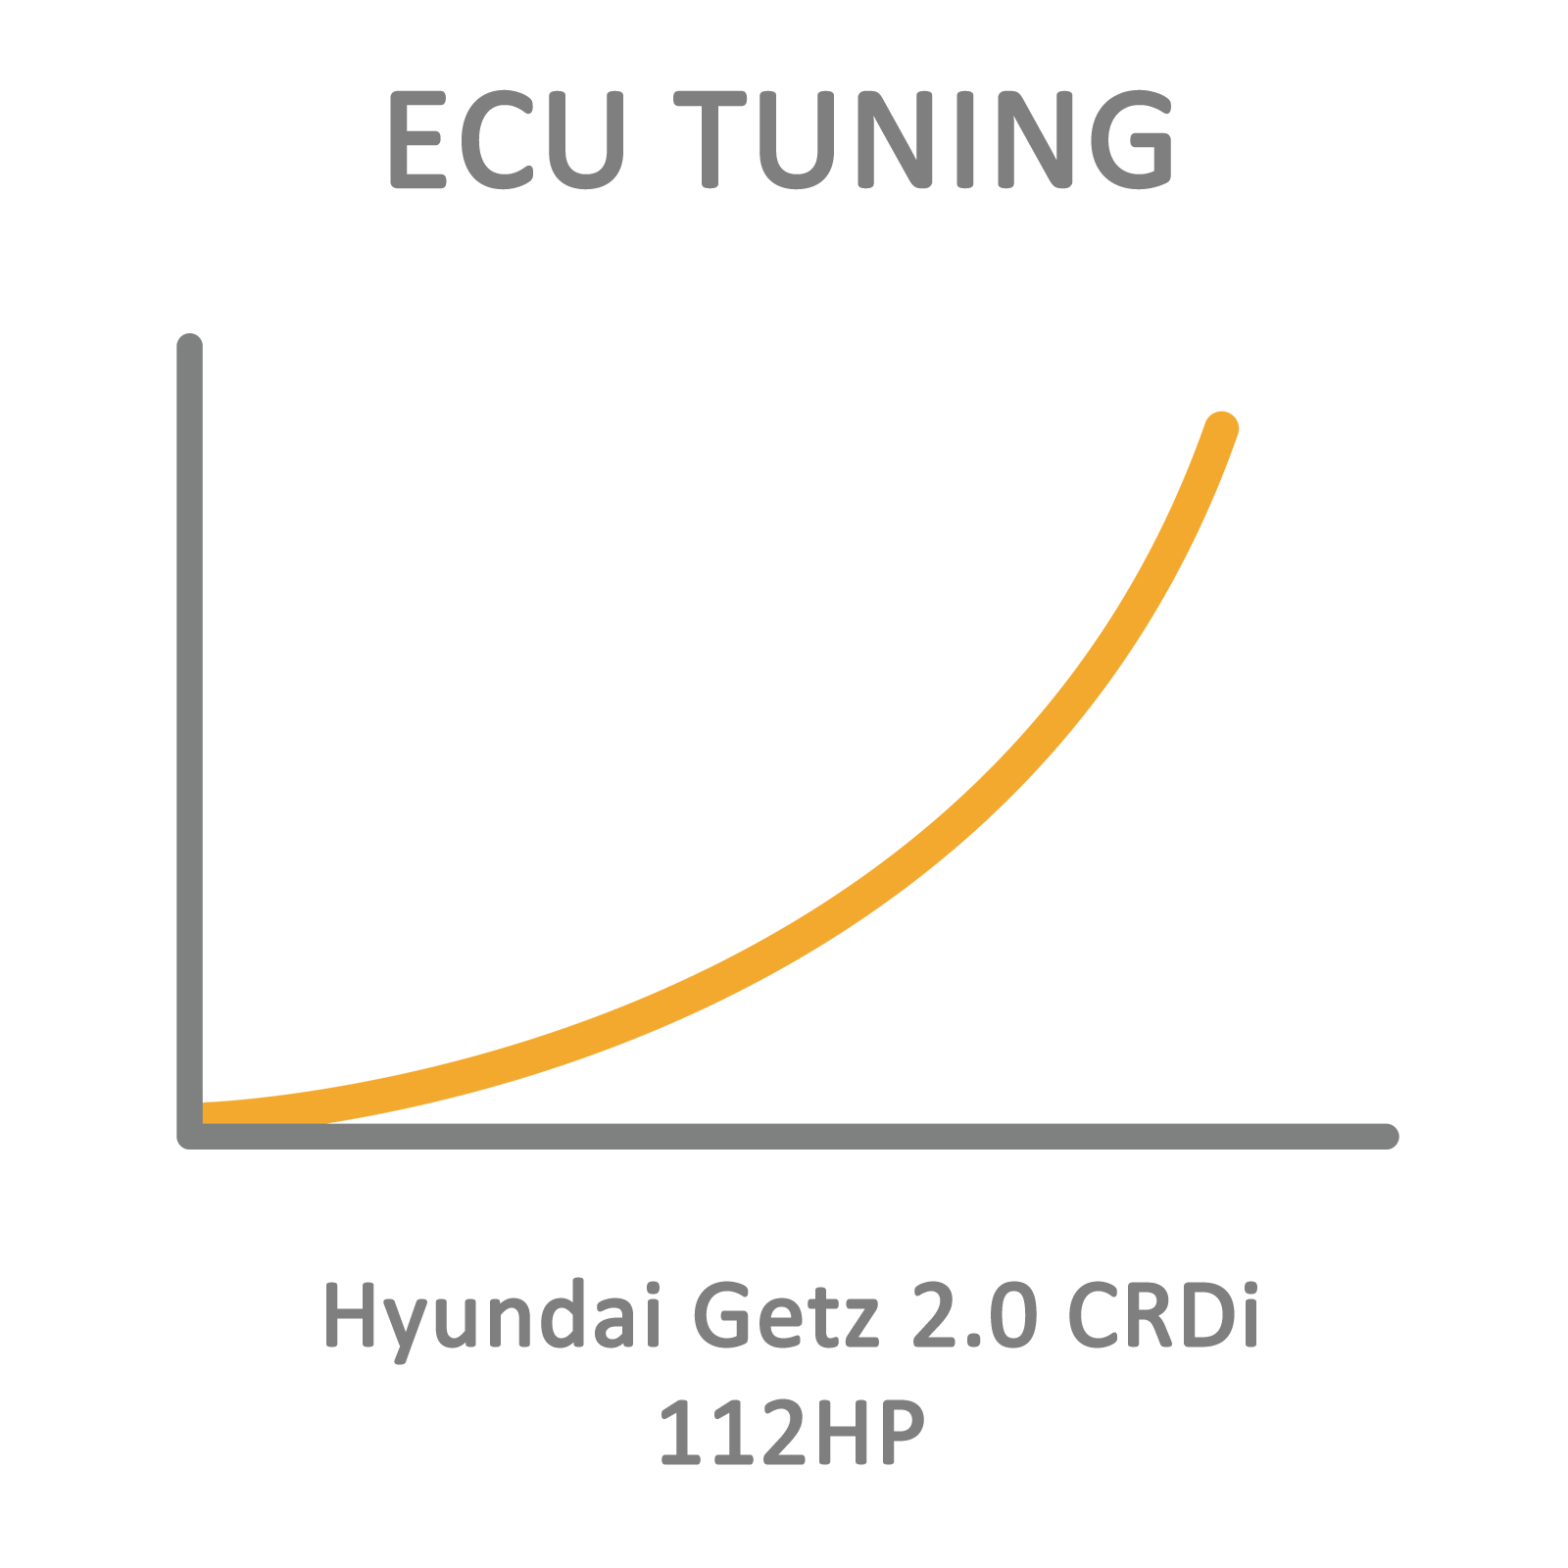 Hyundai Getz 2.0 CRDi 112HP ECU Tuning Remapping Programming